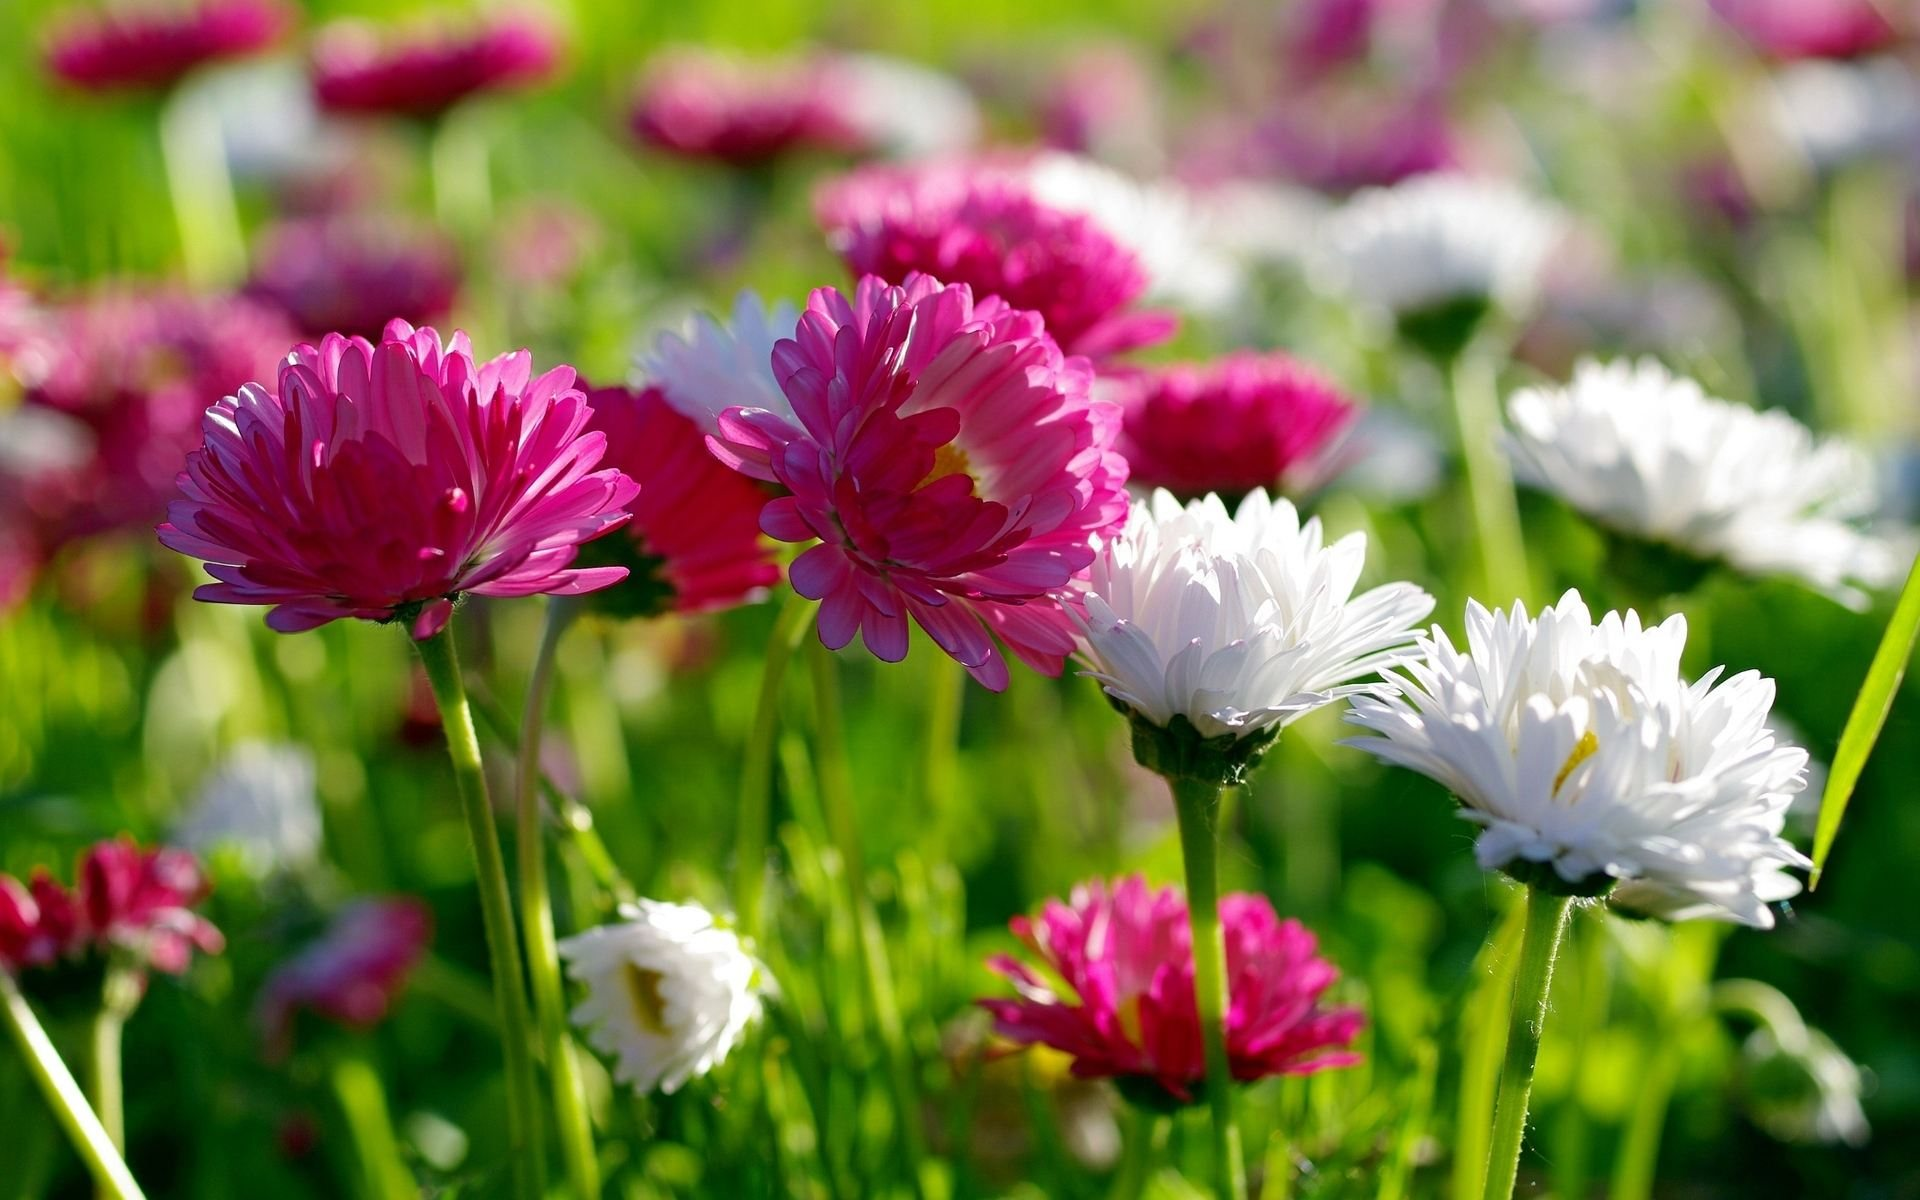 Flowers wallpapers high definition wallpapers high definition - Spring Flower Wallpaper Wallpapers High Definition